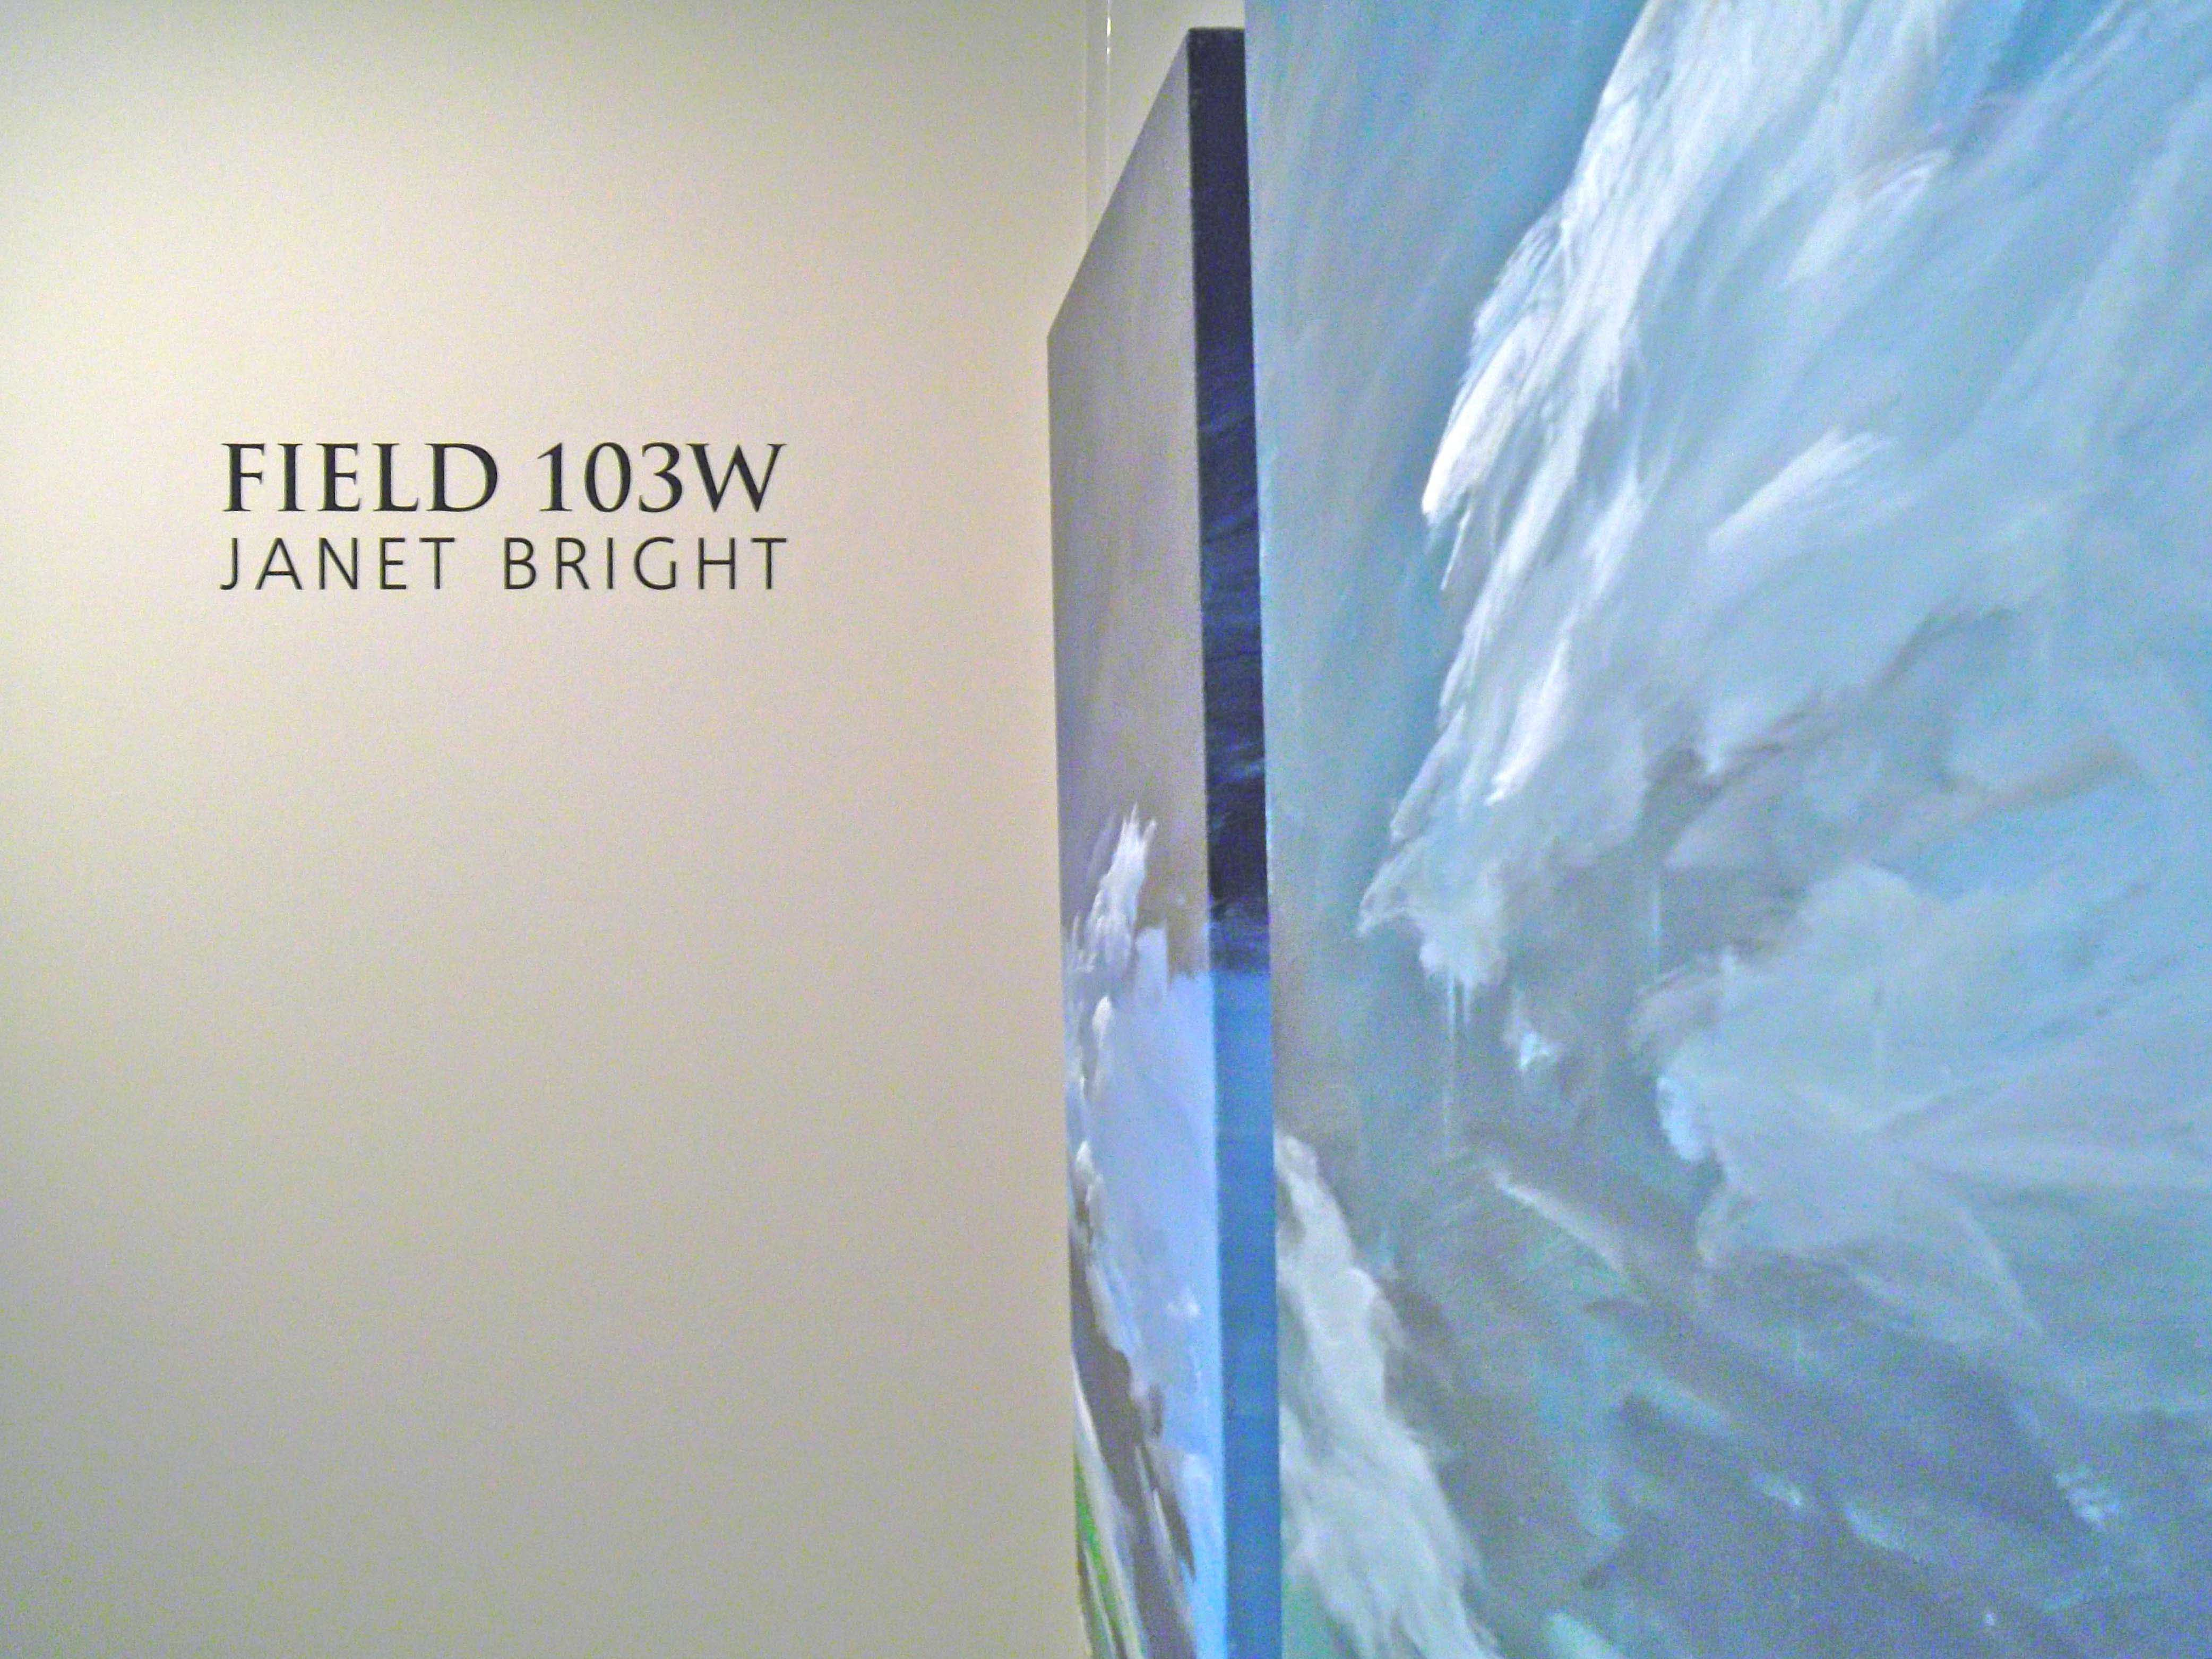 field 103w janet bright the reach gallery museum